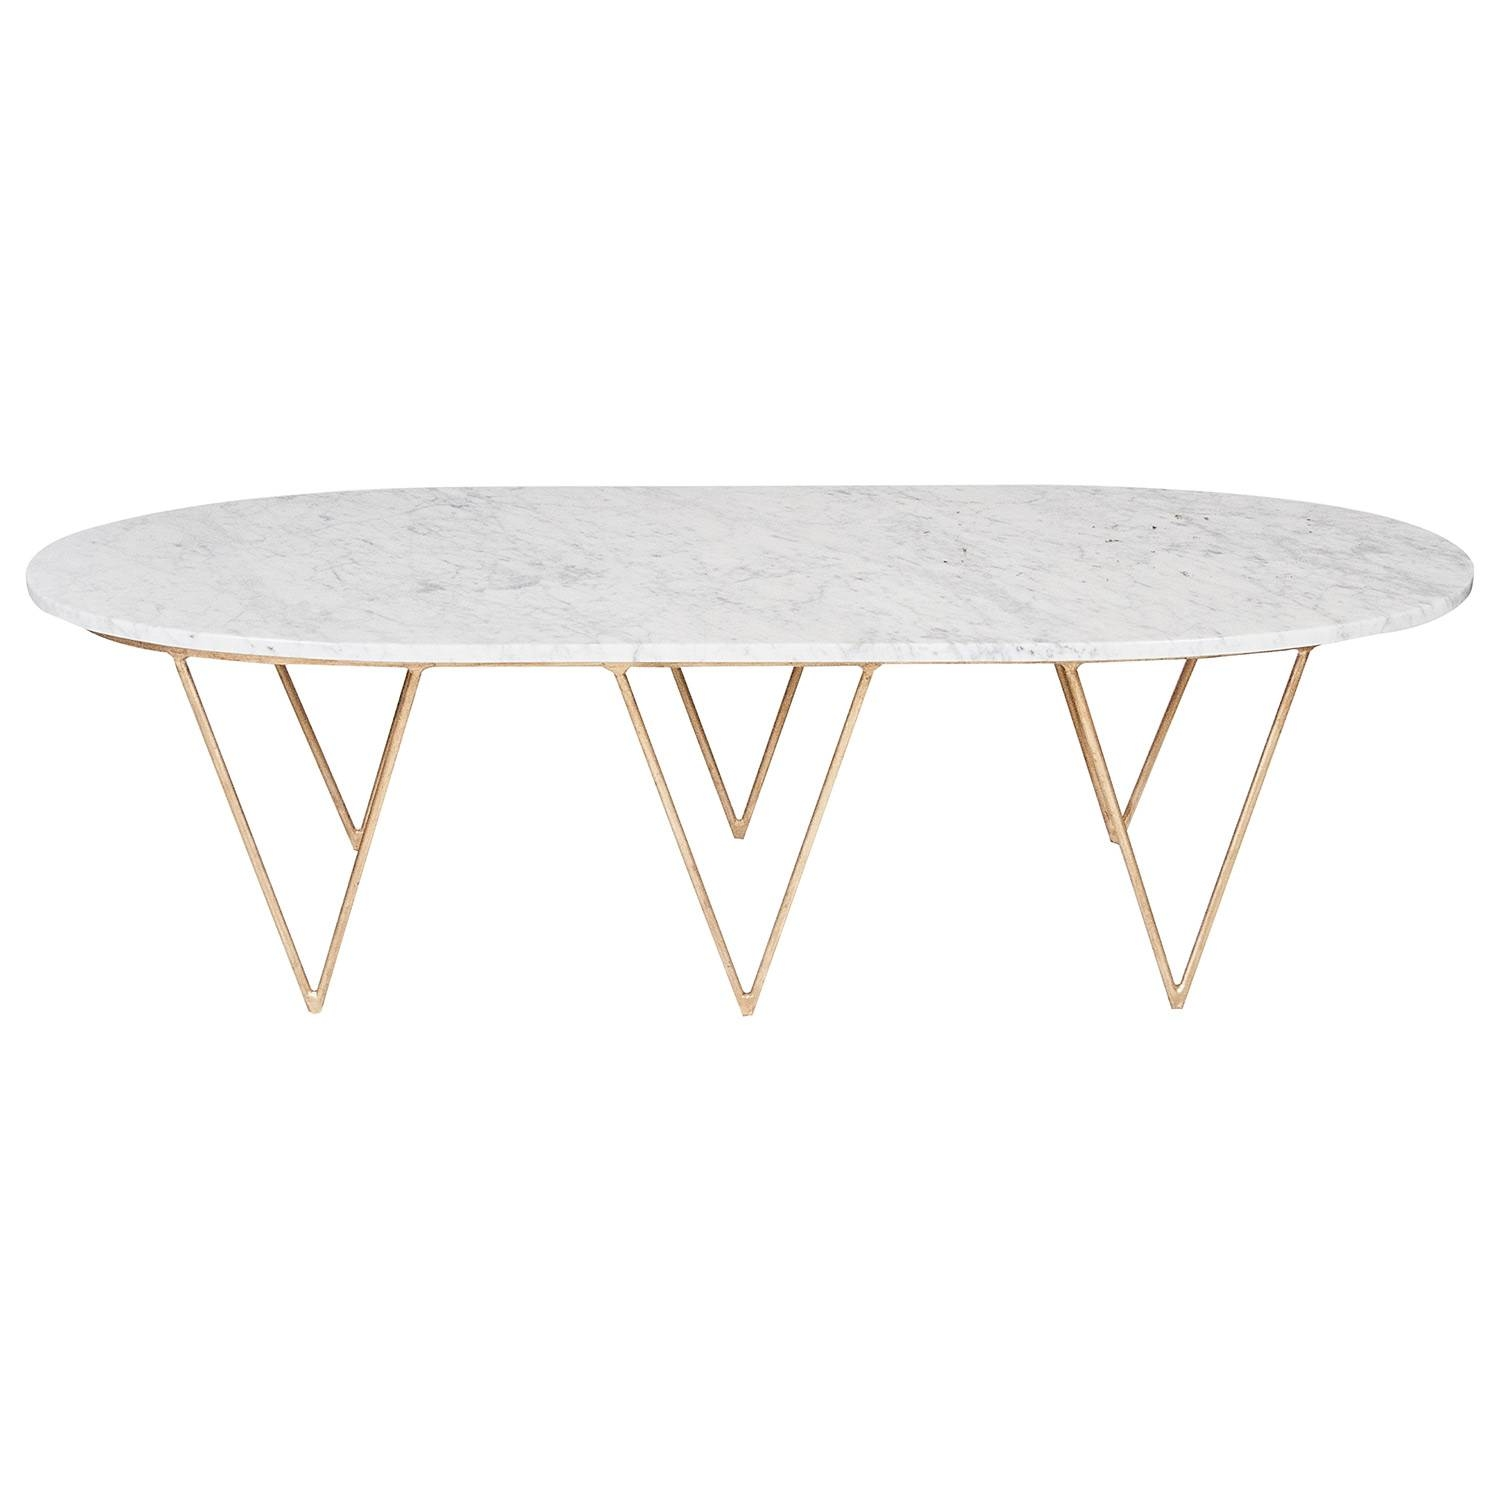 Interesting Oval Marble Coffee Table – Square Marble Coffee Table throughout White Oval Coffee Tables (Image 21 of 30)